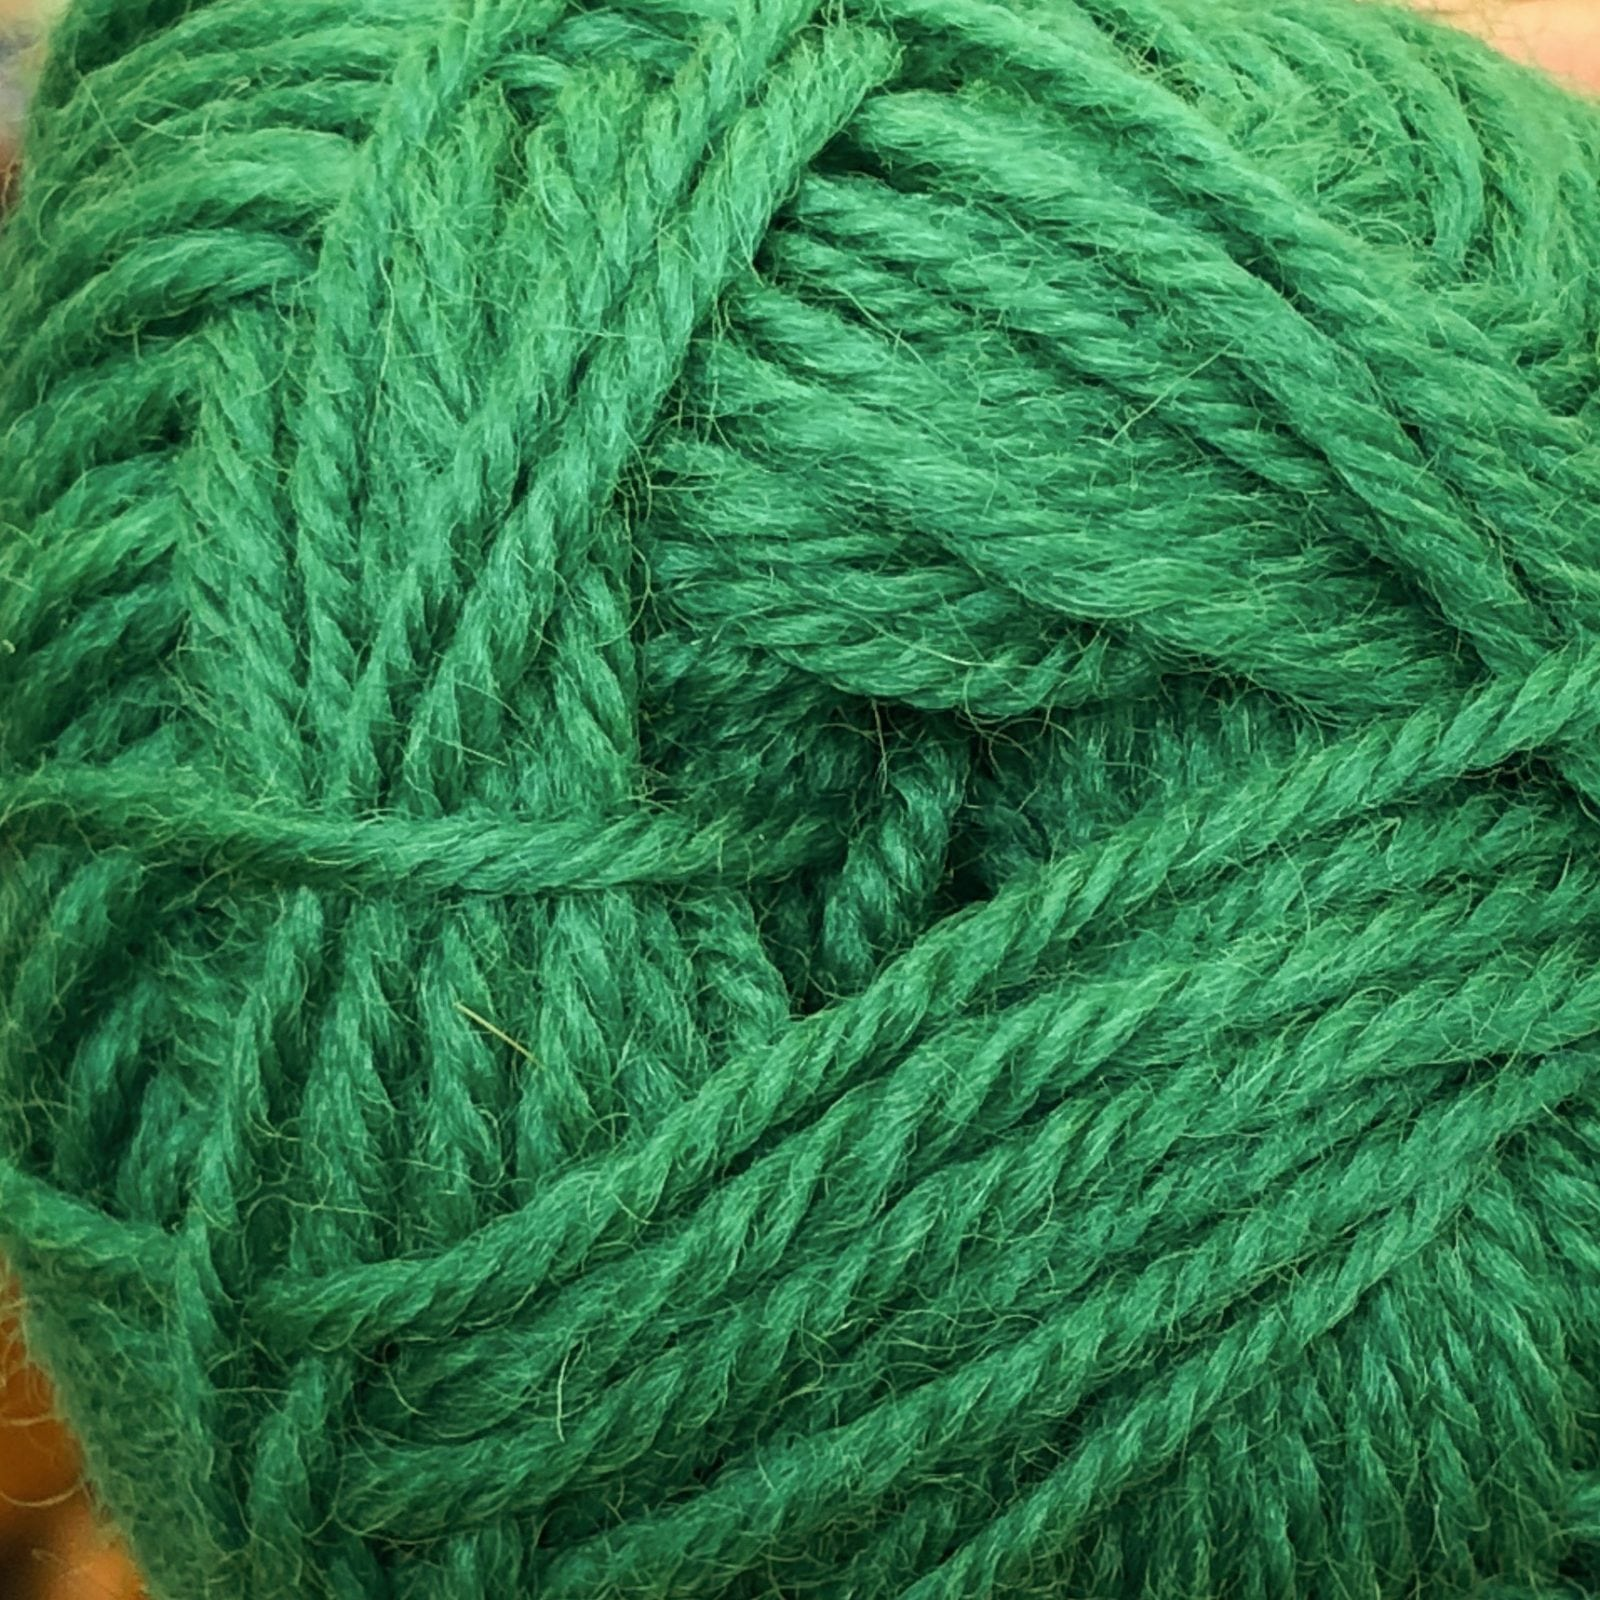 Countrywide Windsor 100% New Zealand wool yarn 8ply 8 ply